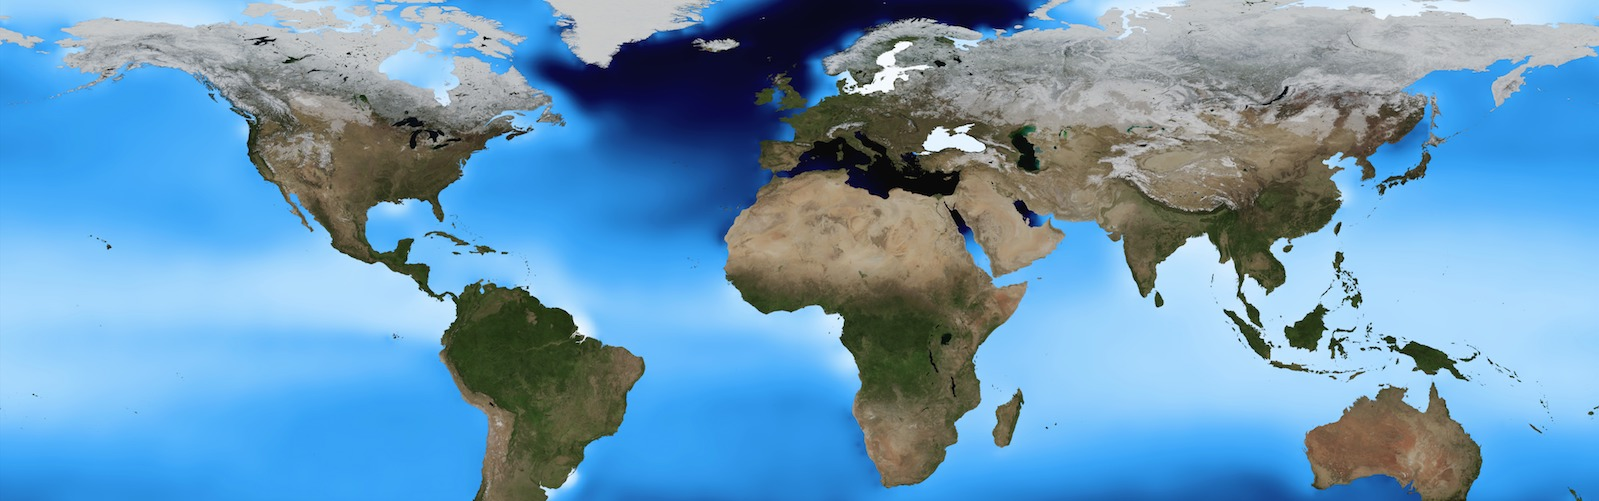 slide 5 - Keeping score on Earth's rising seas